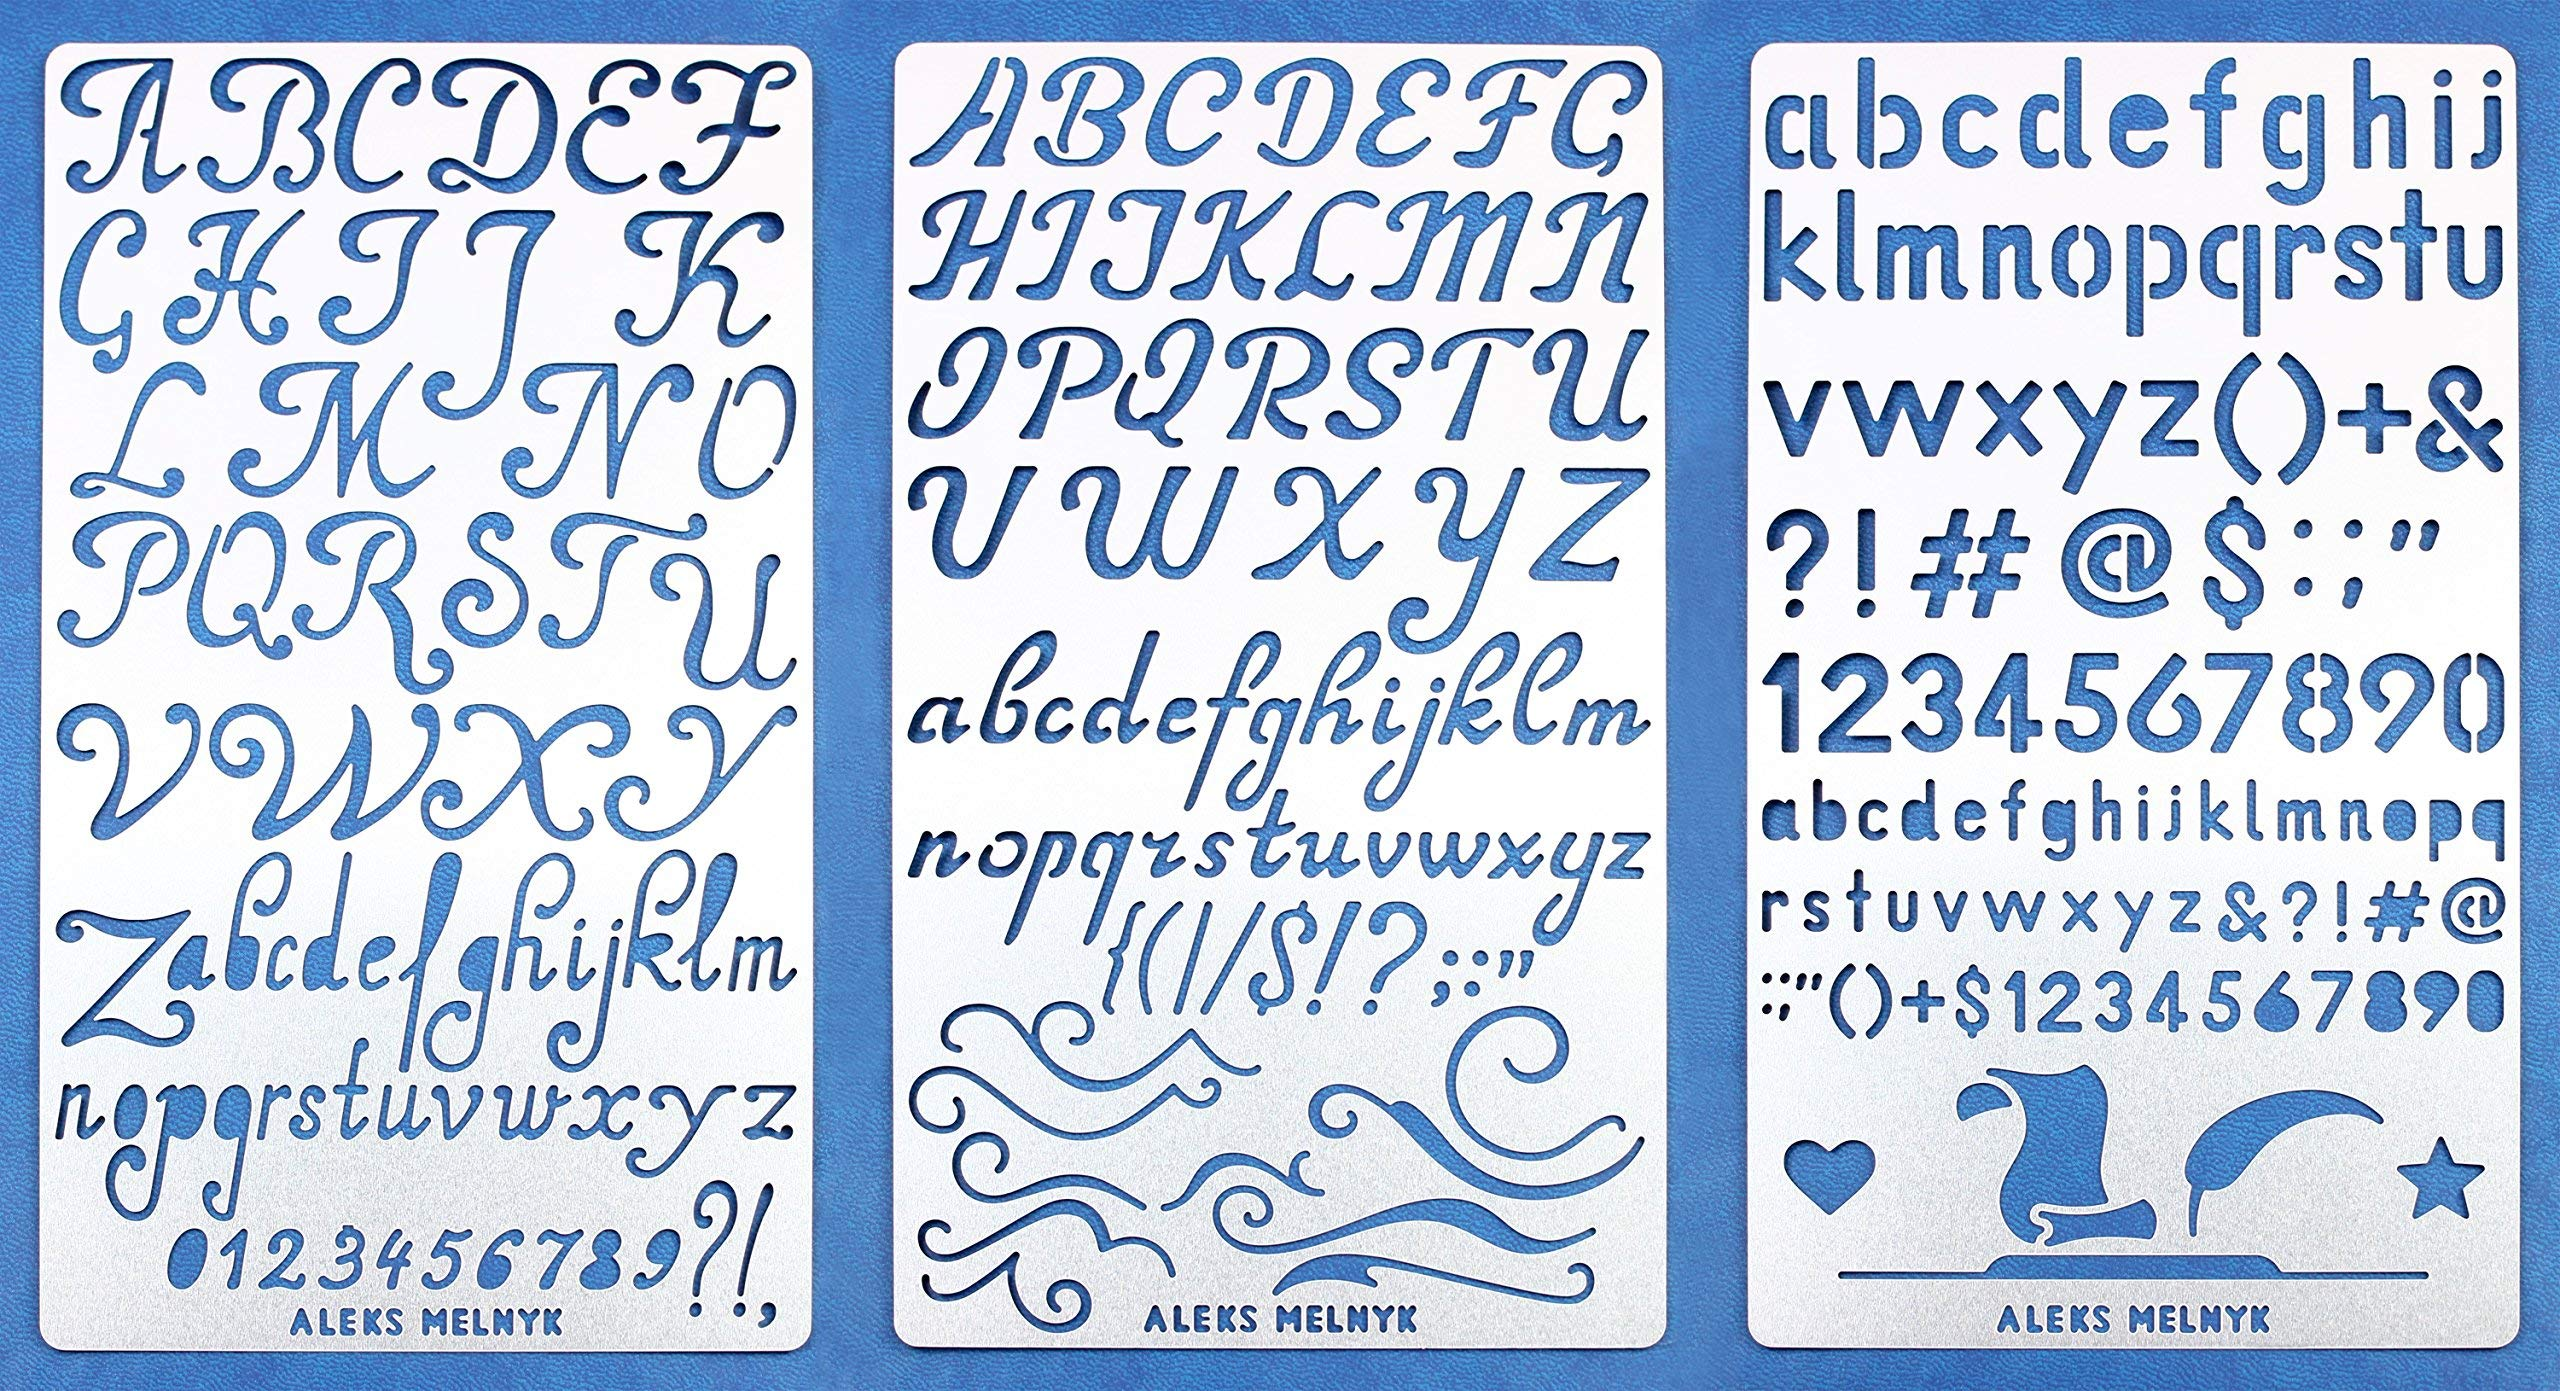 Aleks Melnyk #34 Metal Journal Stencils/Alphabet Letter Number, ABC/Stainless Steel Stencils Kit 3 PCS/Templates Tool for Wood Burning, Pyrography and Engraving/Scrapbooking/Crafting/DIY